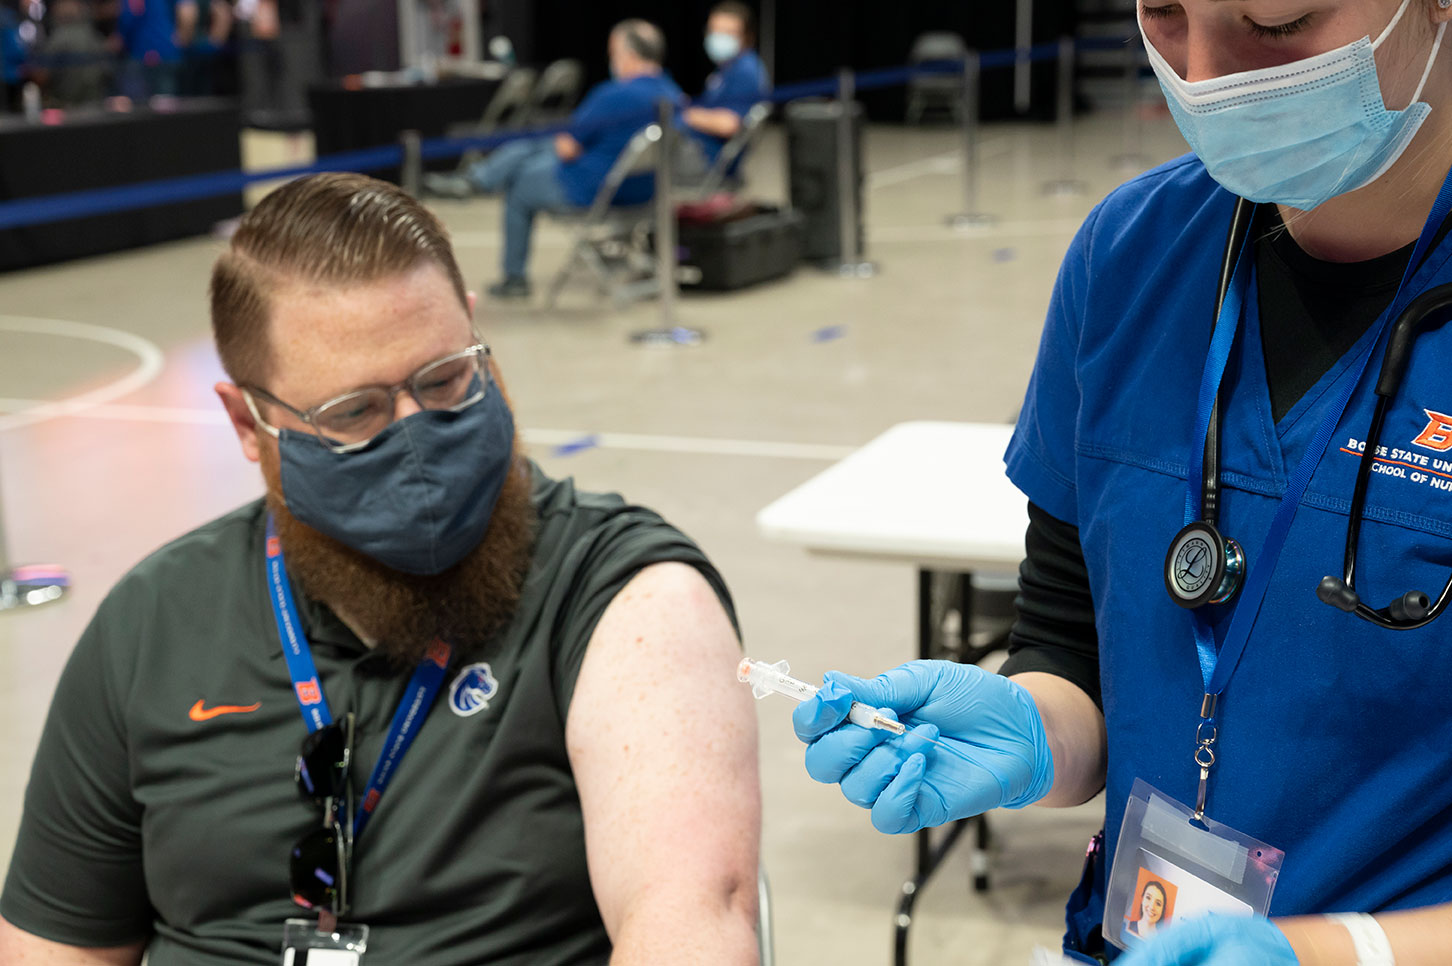 Nursing student prepares to give a vaccine at Boise State COVID mass vaccination clinic, Extra Mile Arena, April 3, 2021